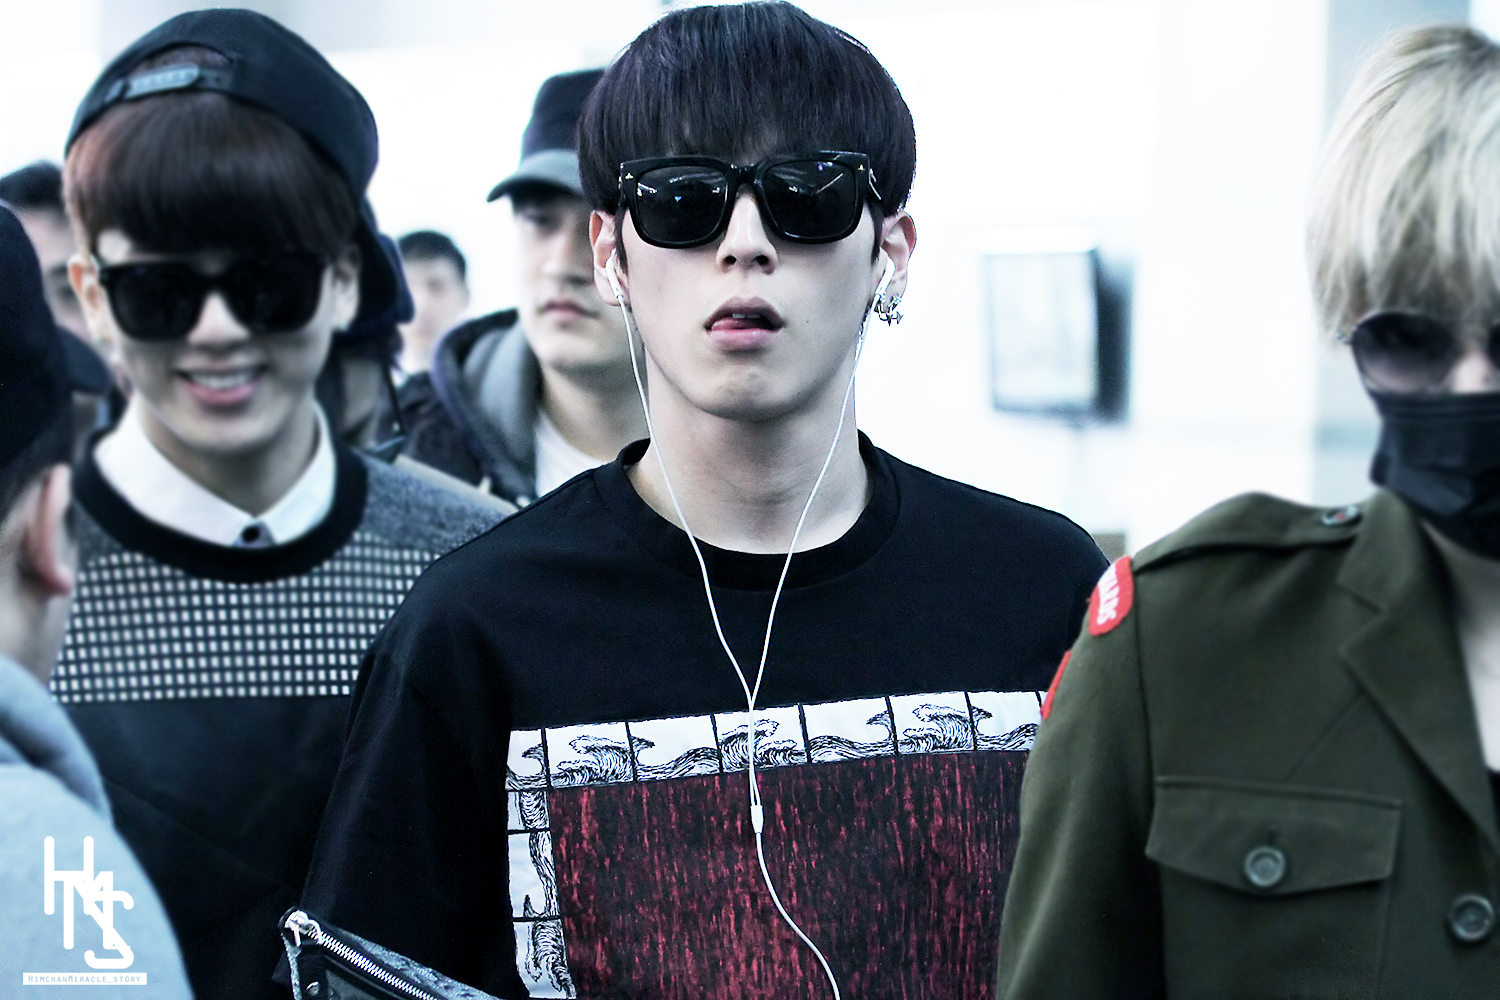 PICT] 140411 B.A.P Himchan @ Incheon Airport #1 [13P] | bumblebee